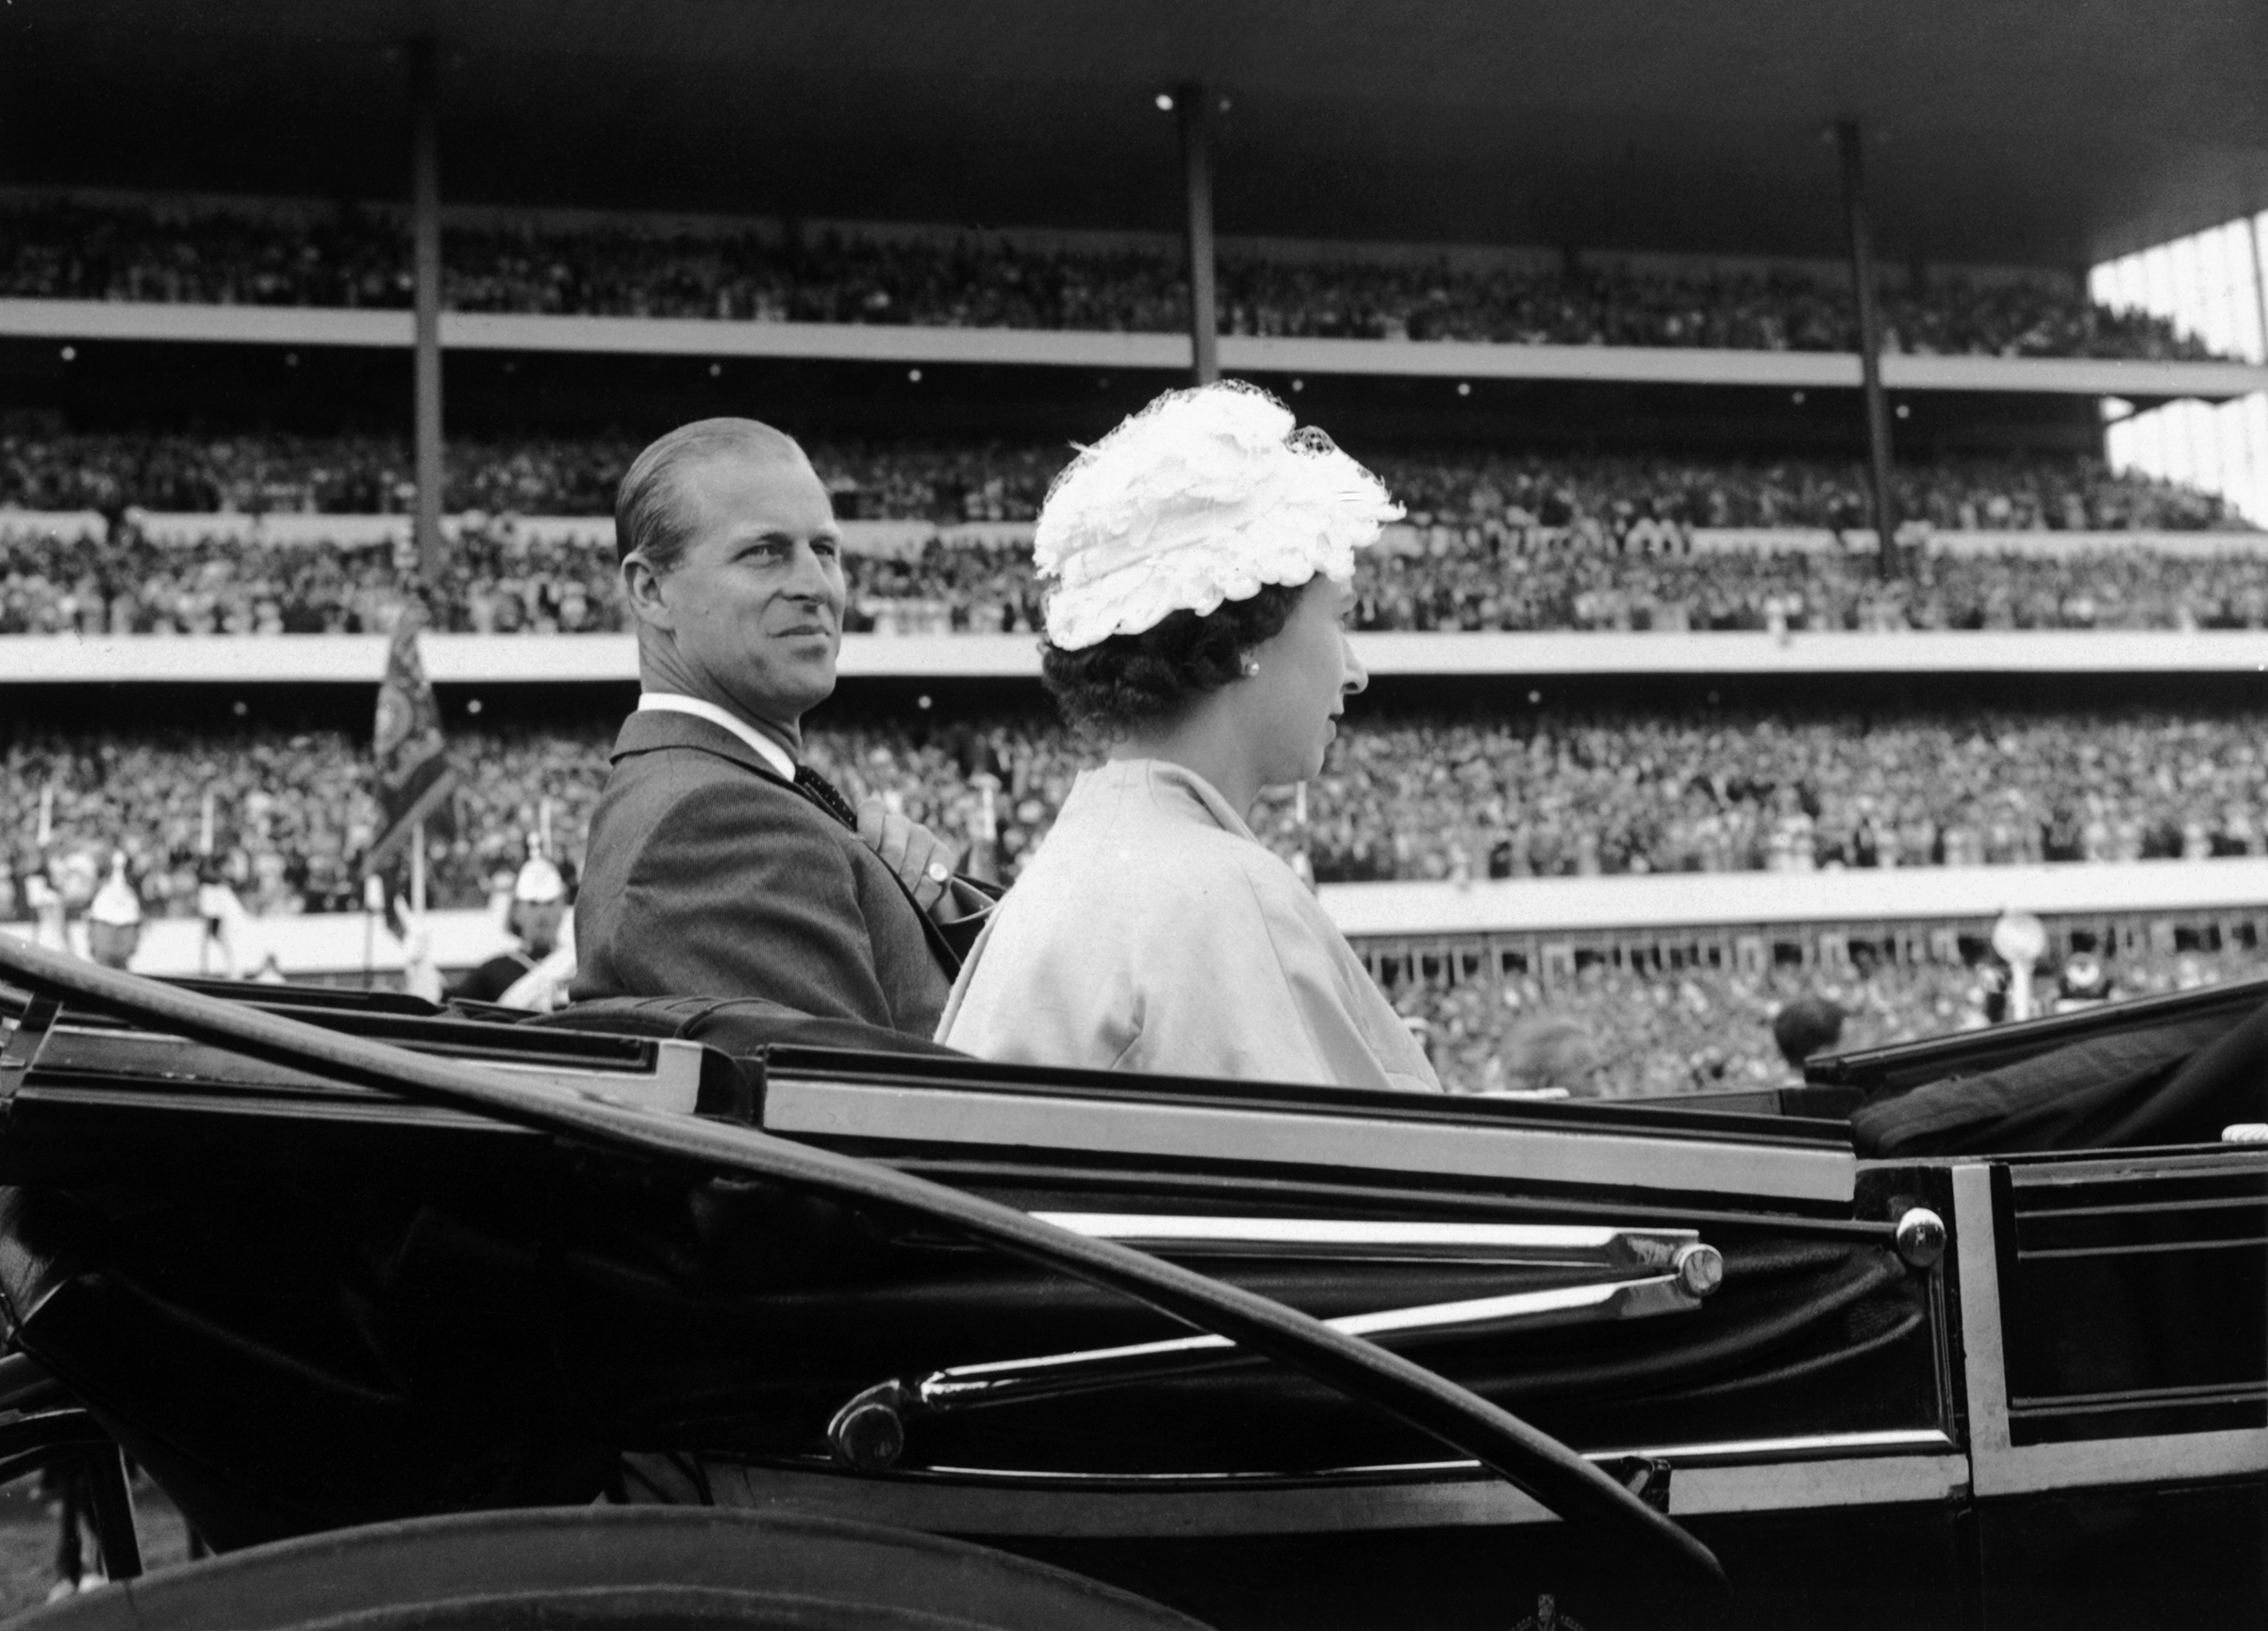 Her Majesty Queen Elizabeth II and her husband Prince Philip, Duke of Edinburgh, arrive in a carriage to attend the opening ceremonies of the 100th running of the Queen's Plate in Toronto on June 30, 1959.